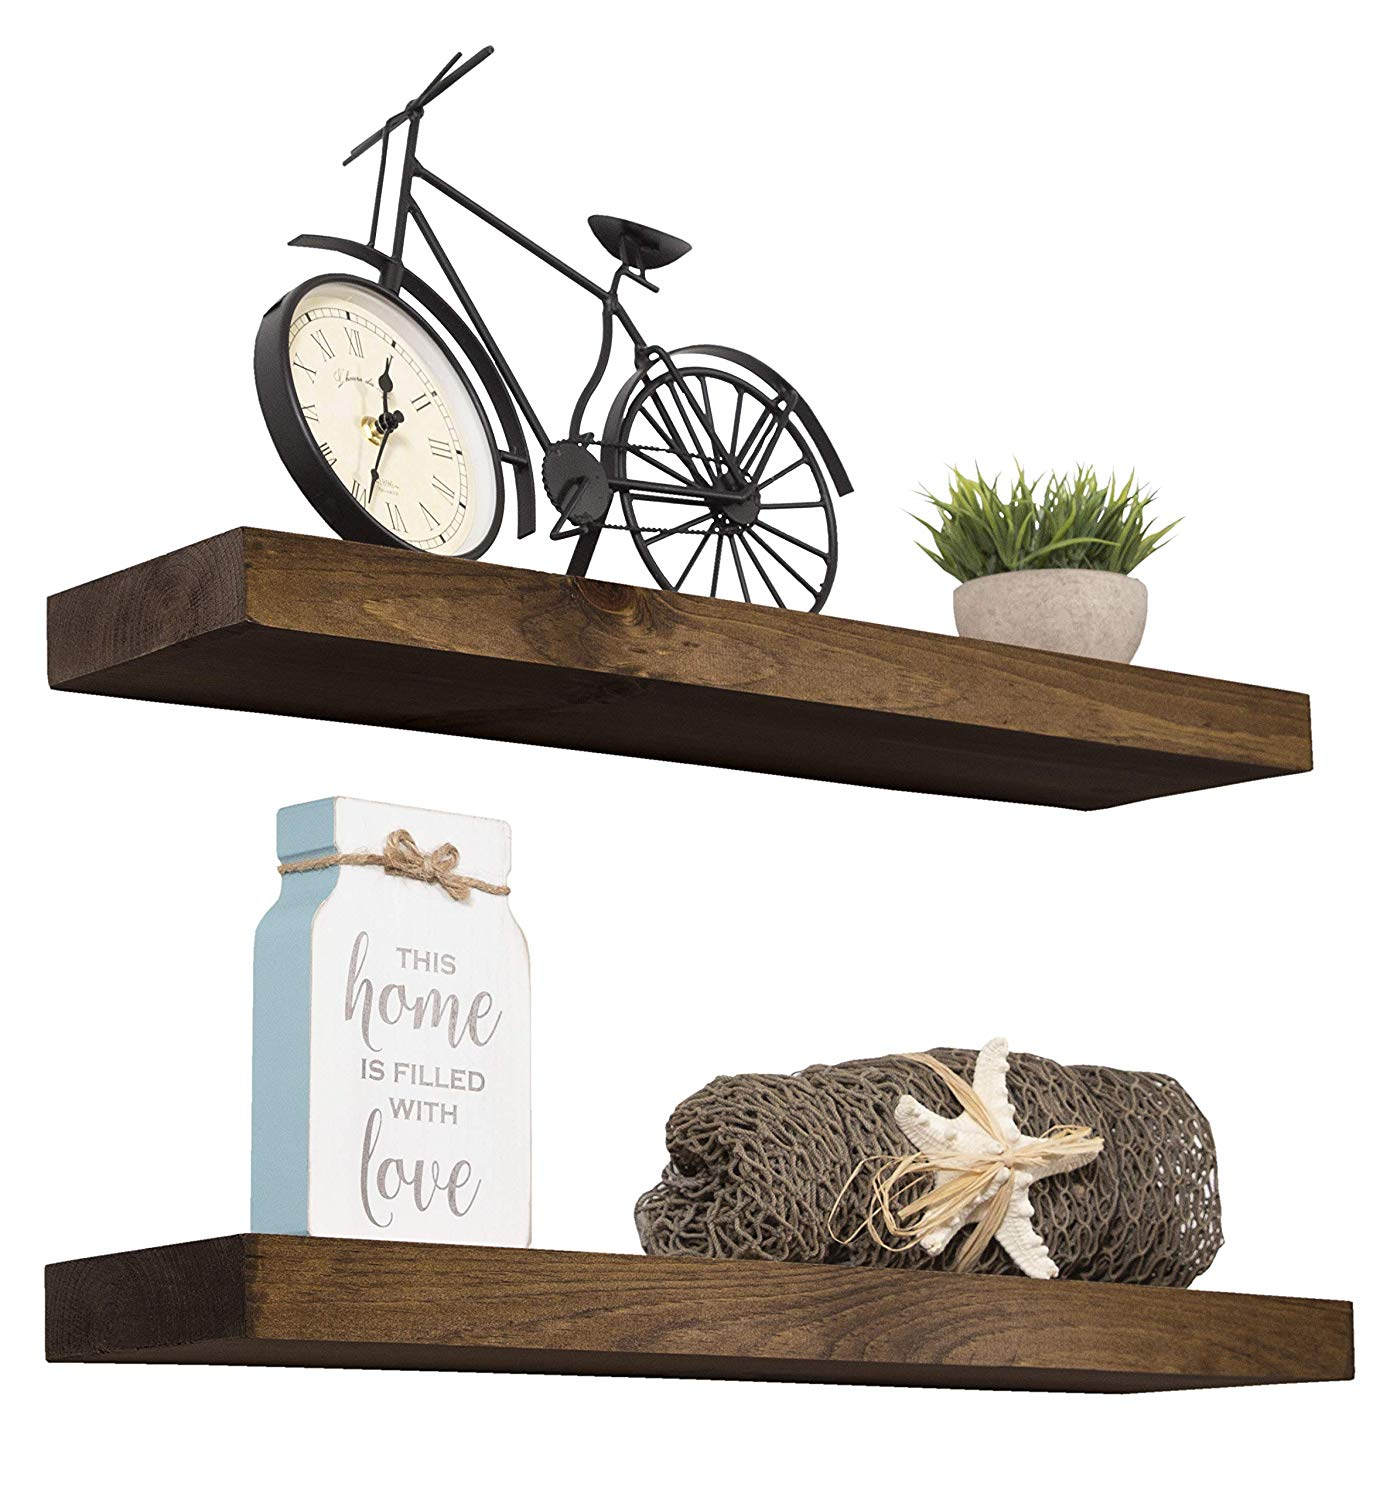 imperative decor floating shelves rustic wood wall shelf dark usa handmade set walnut home kitchen board over bath storage rack wooden island wheels video shelving build your own